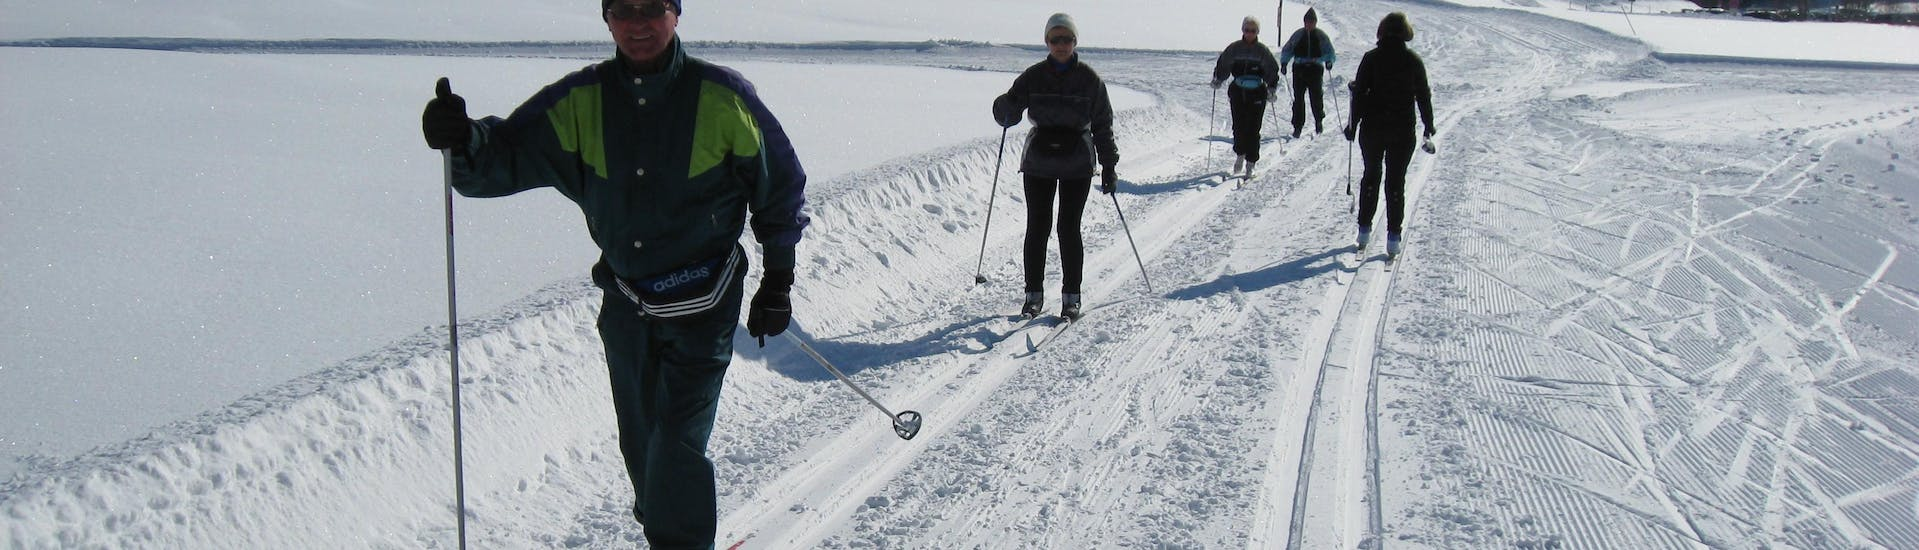 Private Cross Country Skiing Lessons for All Levels with Ski & Snowboard School Ostrachtal - Hero image